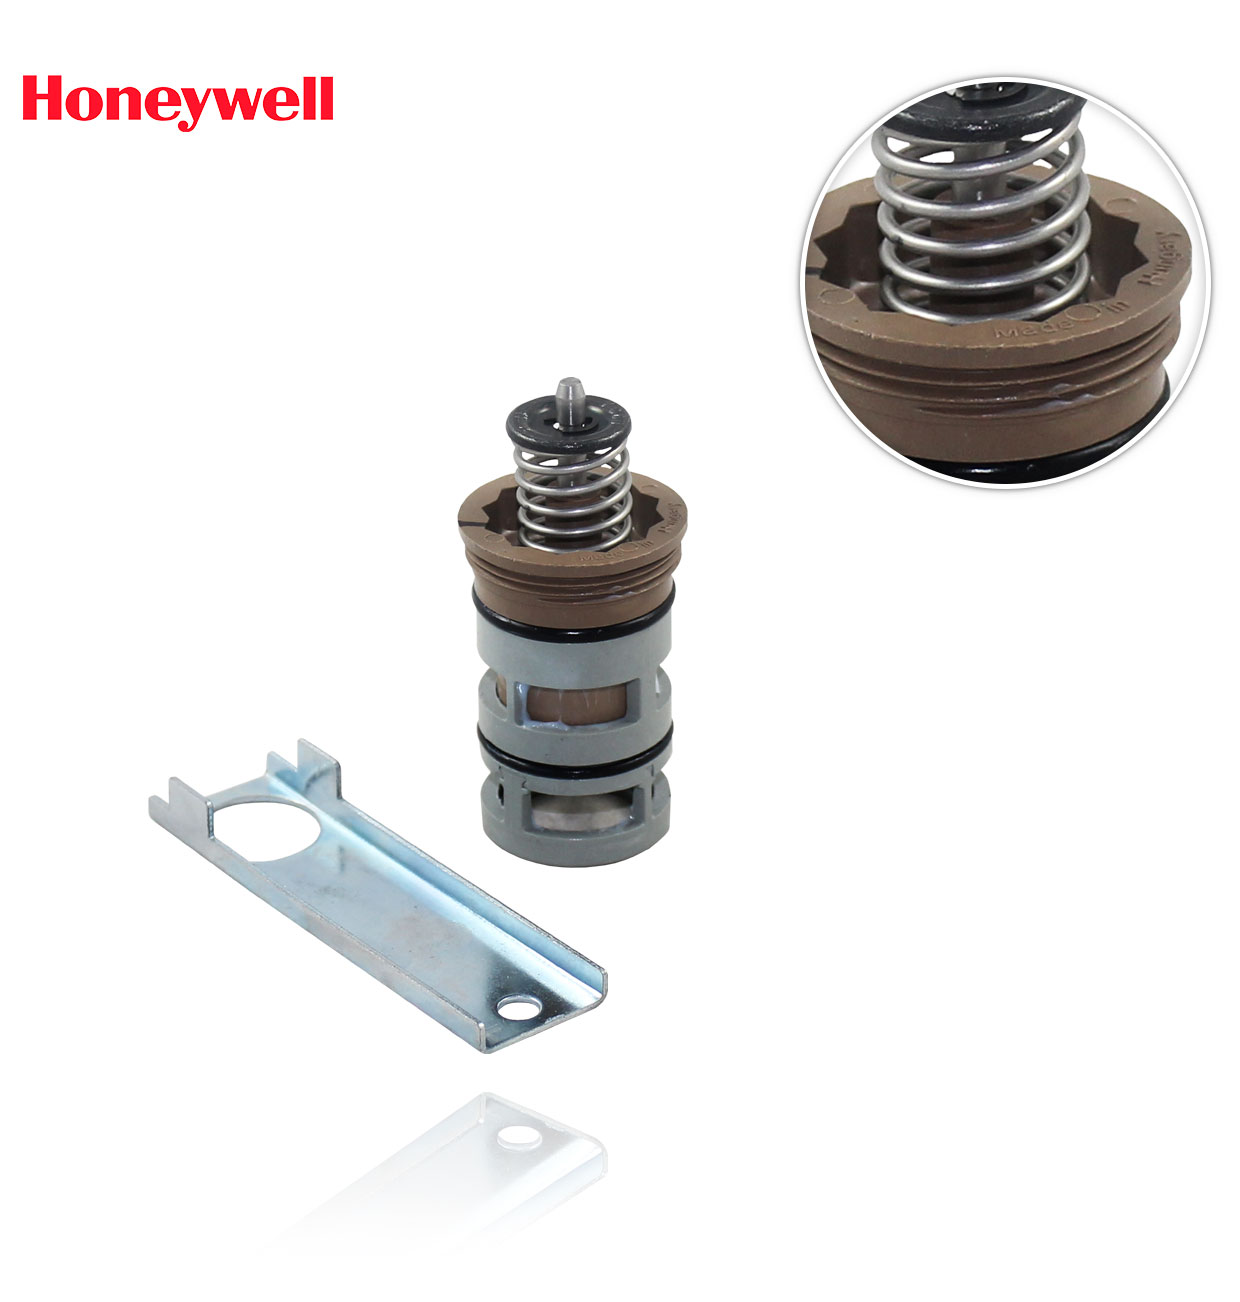 HONEYWELL PLUG-REPLACEMENT CARTRIDGE FOR 3-WAY VALVE